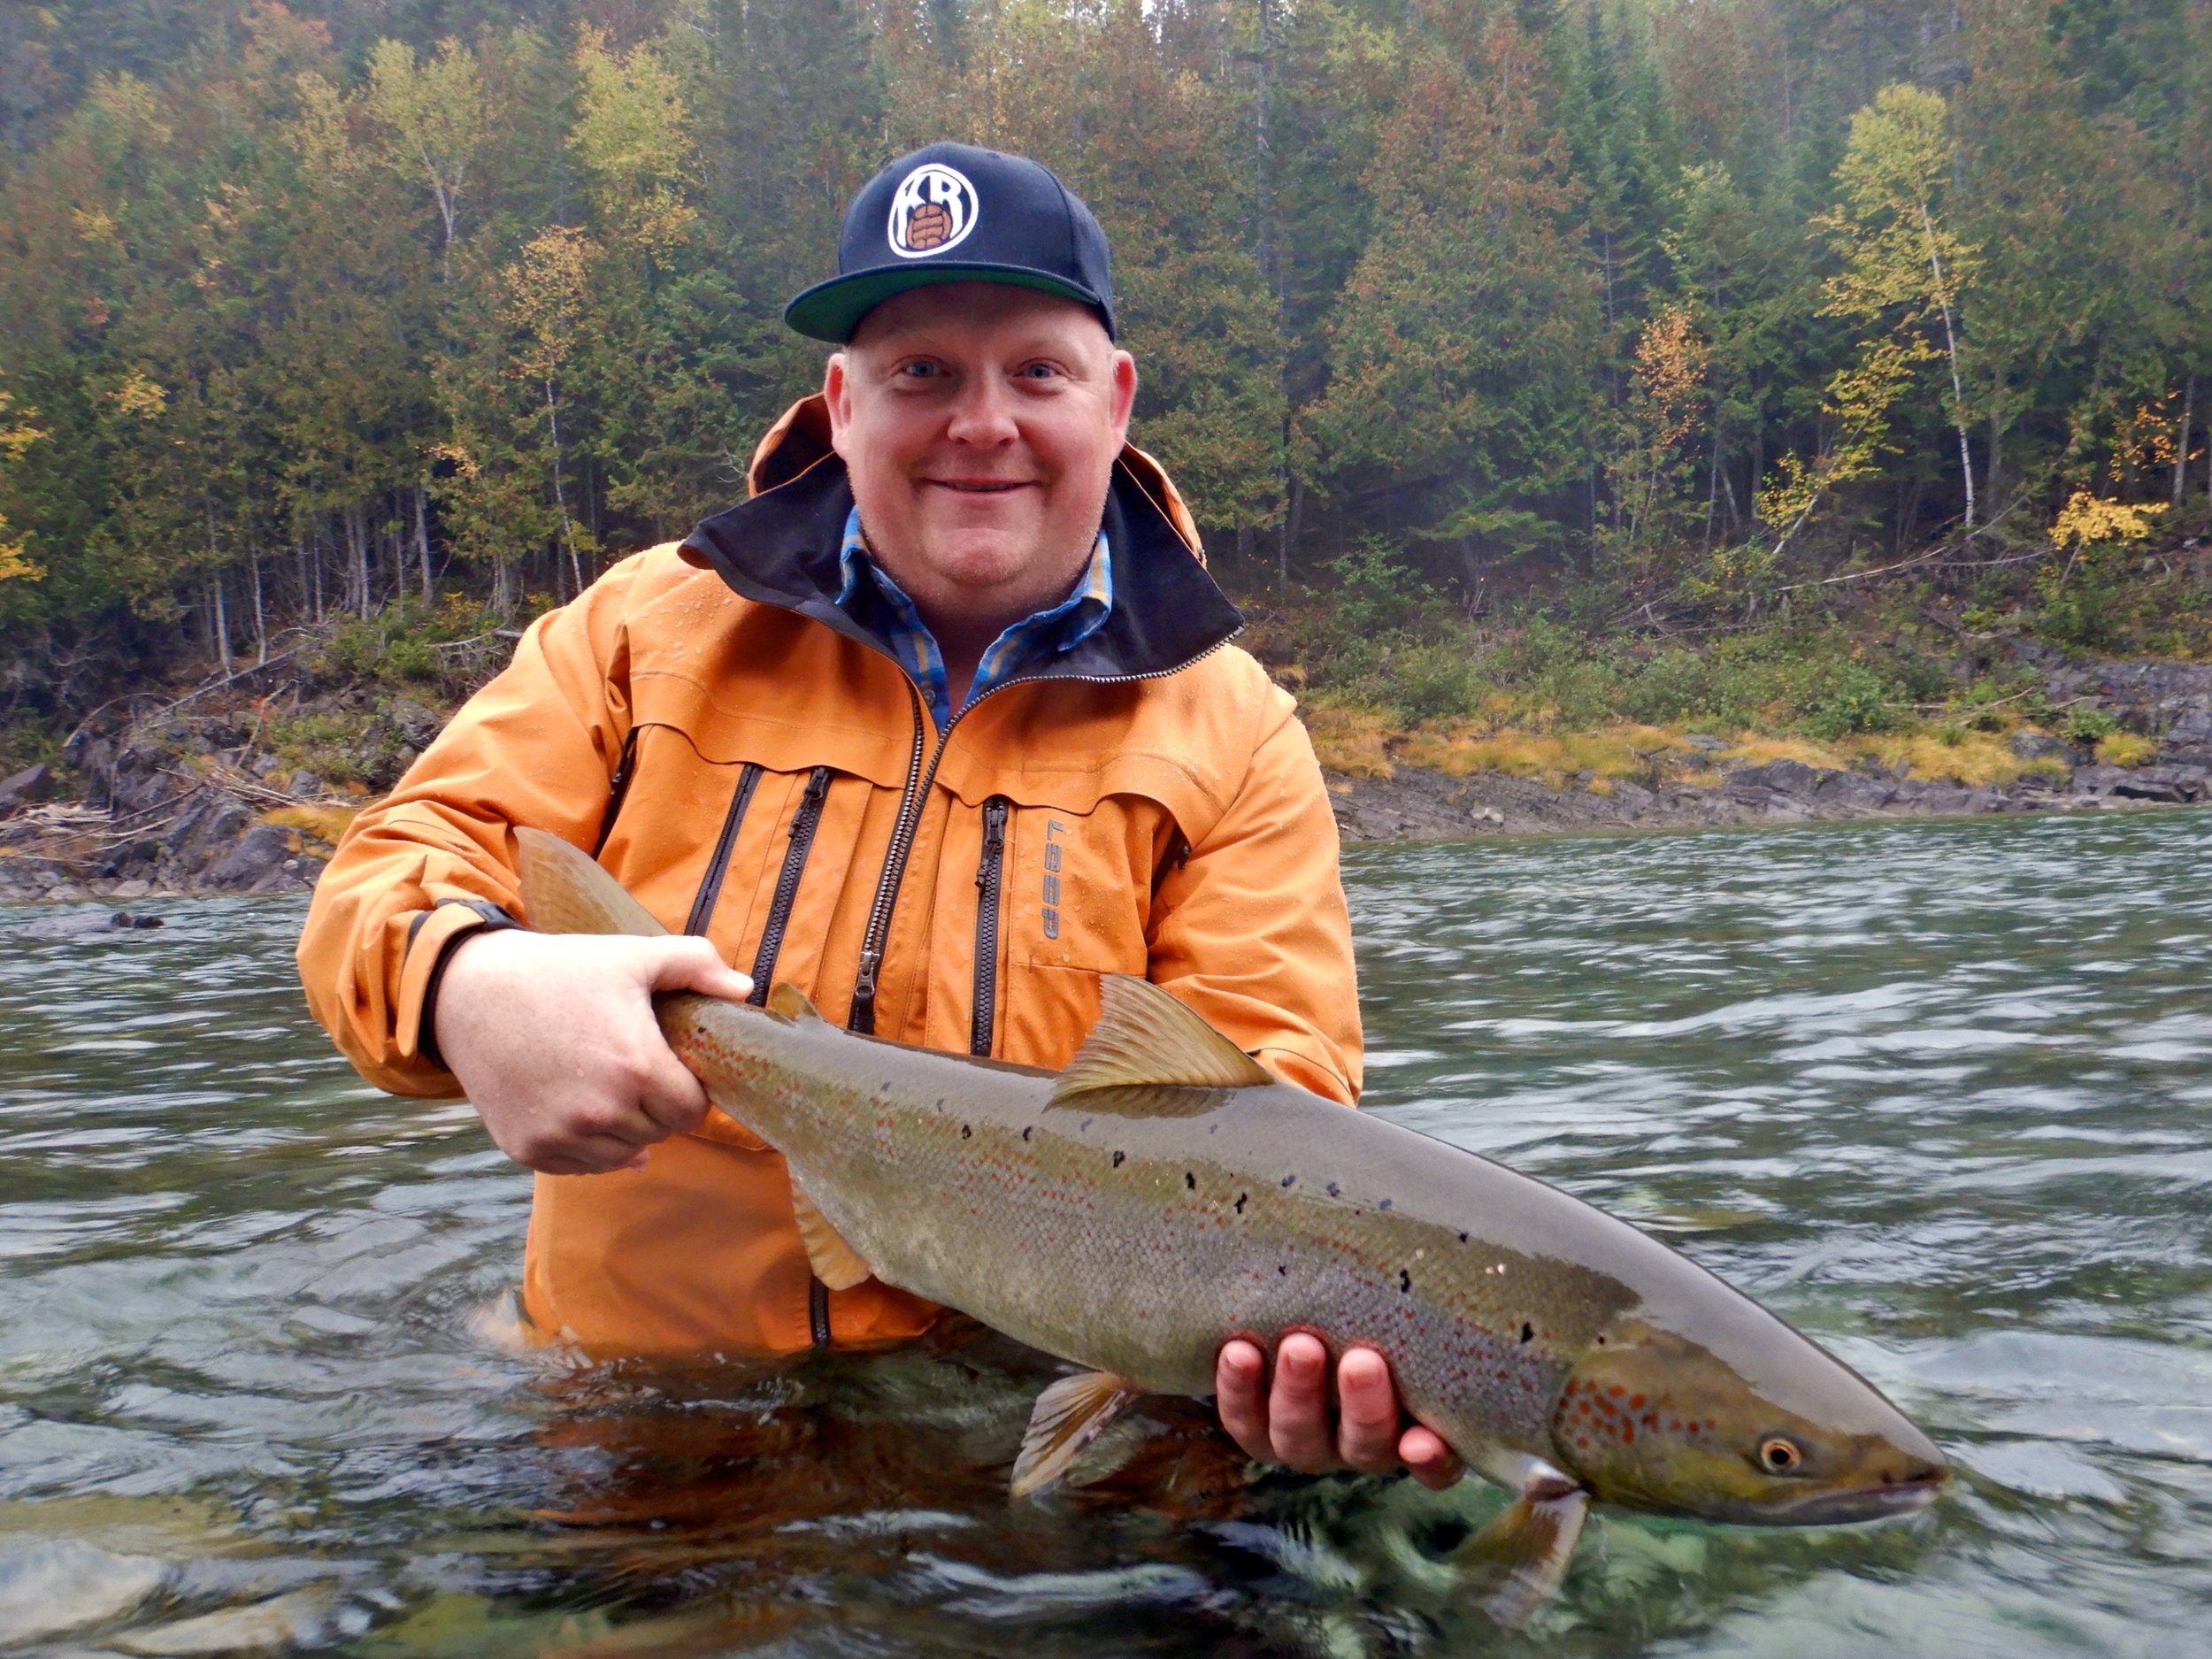 Axel Oskarsson landed this beauty on the Bonaventure River! Nicely done my friend!